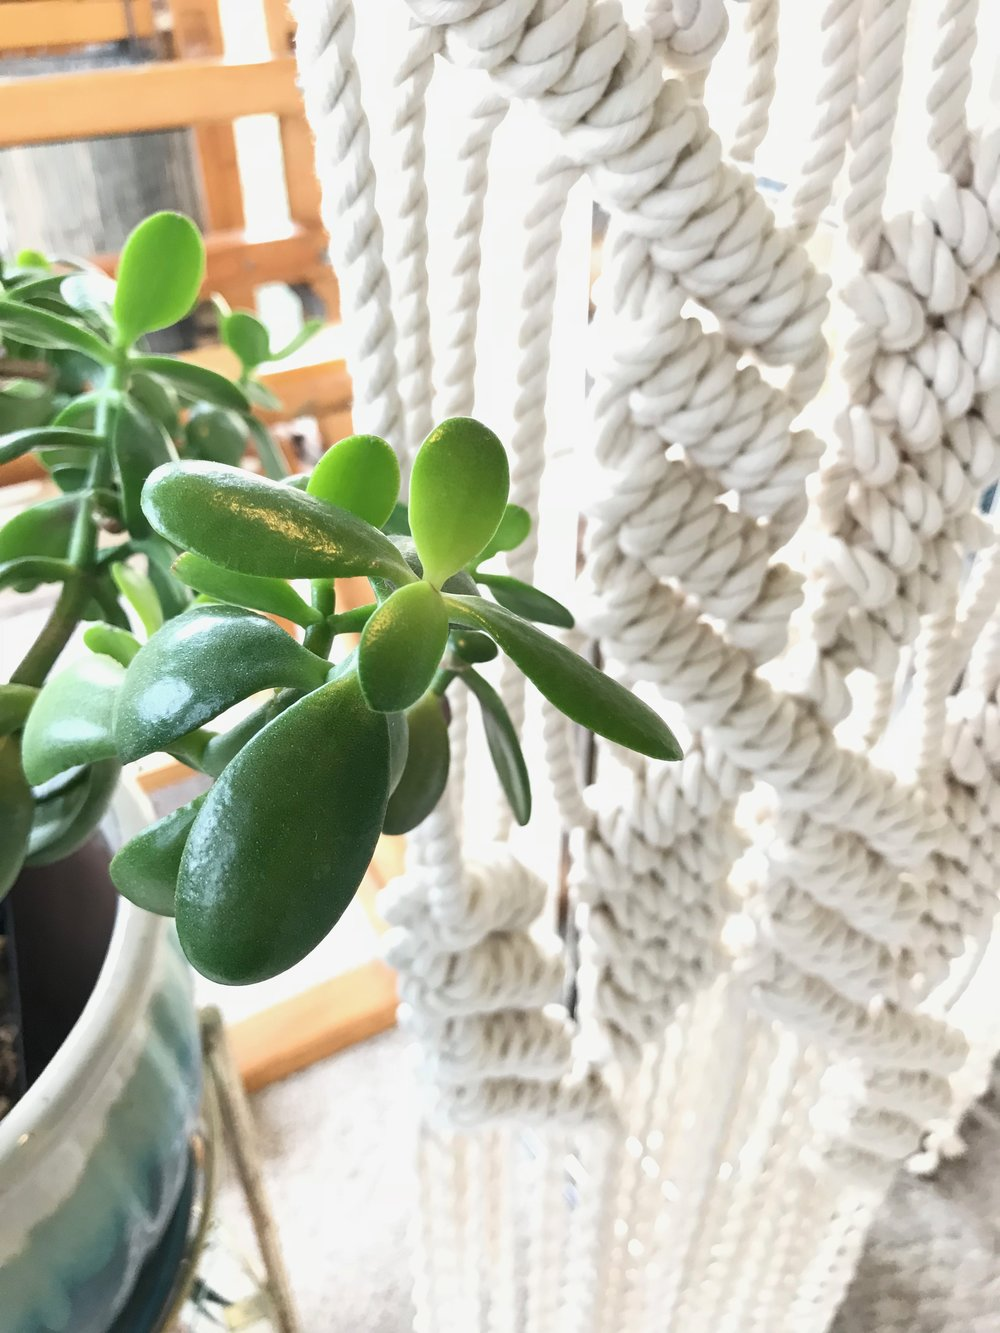 My Jade Plant Secrets Light Watering And How To Grow Guide For The Succulent Jade Plant Houseplant House Sparrow Fine Nesting